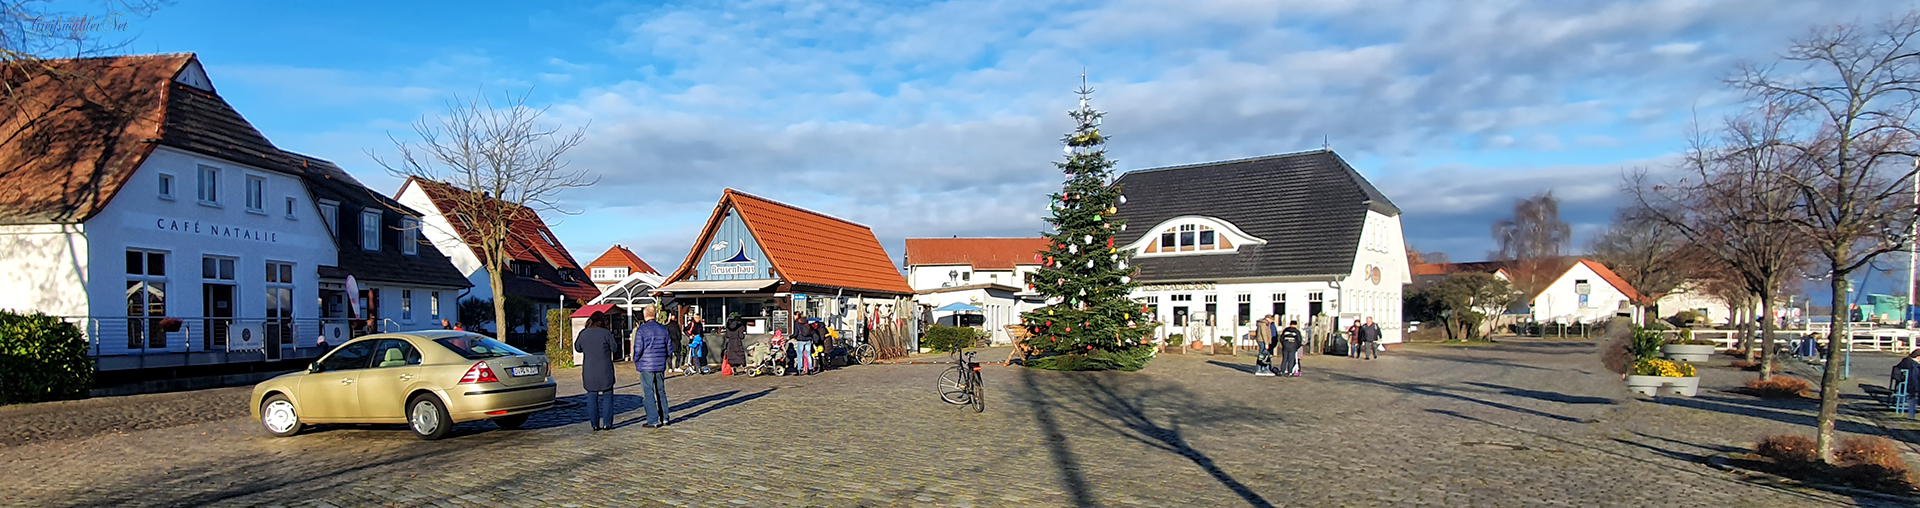 Adventsstimmung in Greifswald-Wieck